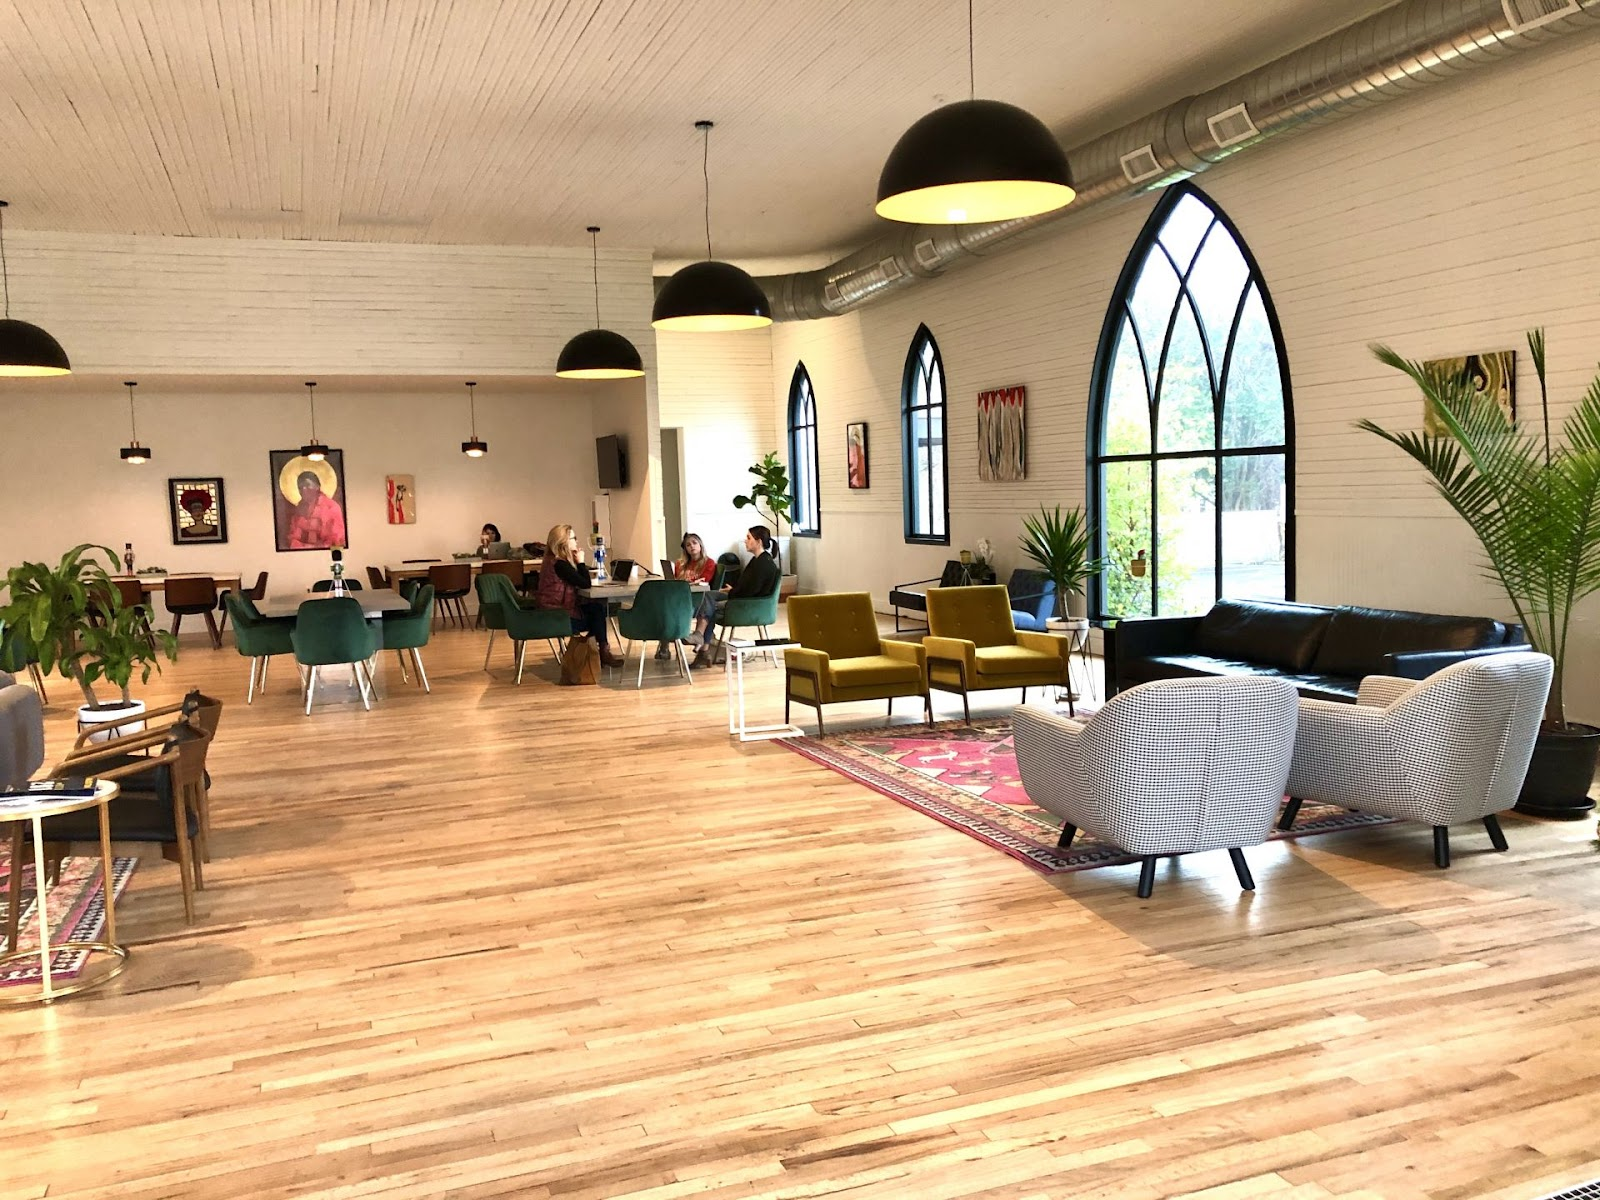 15 Best Coworking Spaces in Austin Texas [2020 List] 26